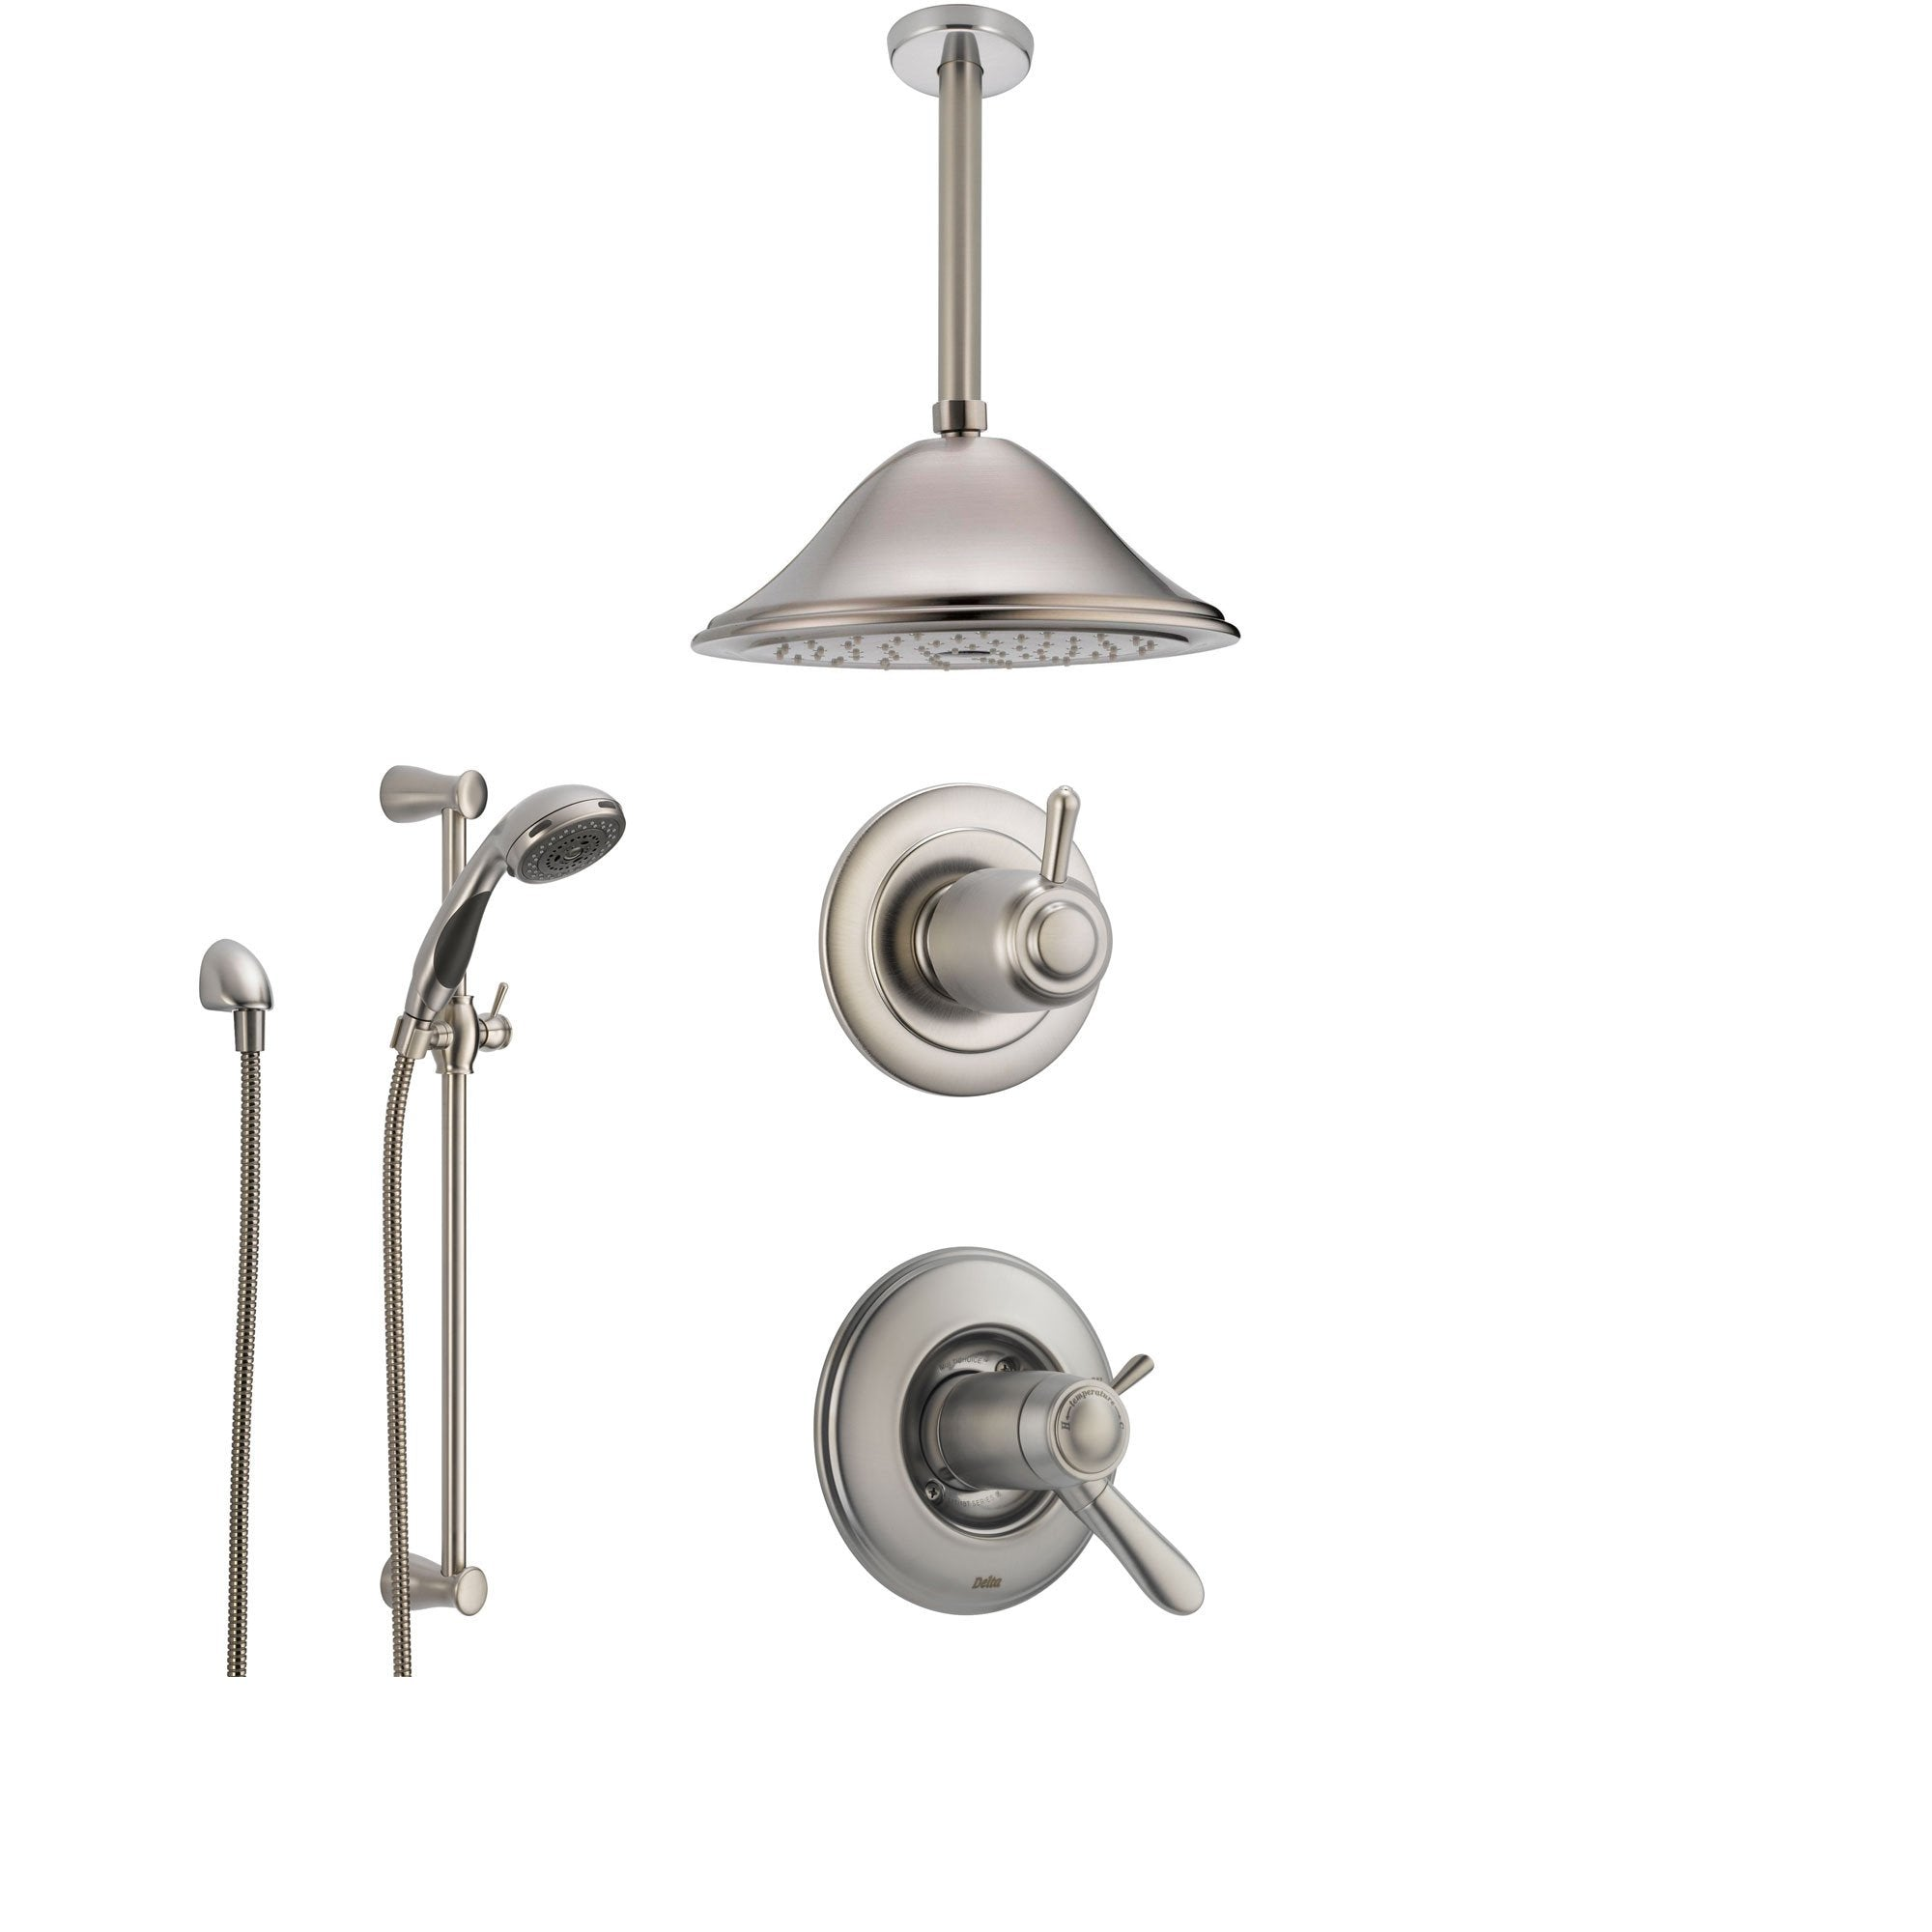 Delta Rain Shower Head With Handheld.Delta Lahara Stainless Steel Shower System With Thermostatic Shower Handle 3 Setting Diverter Large Ceiling Mount Rain Showerhead And Handheld